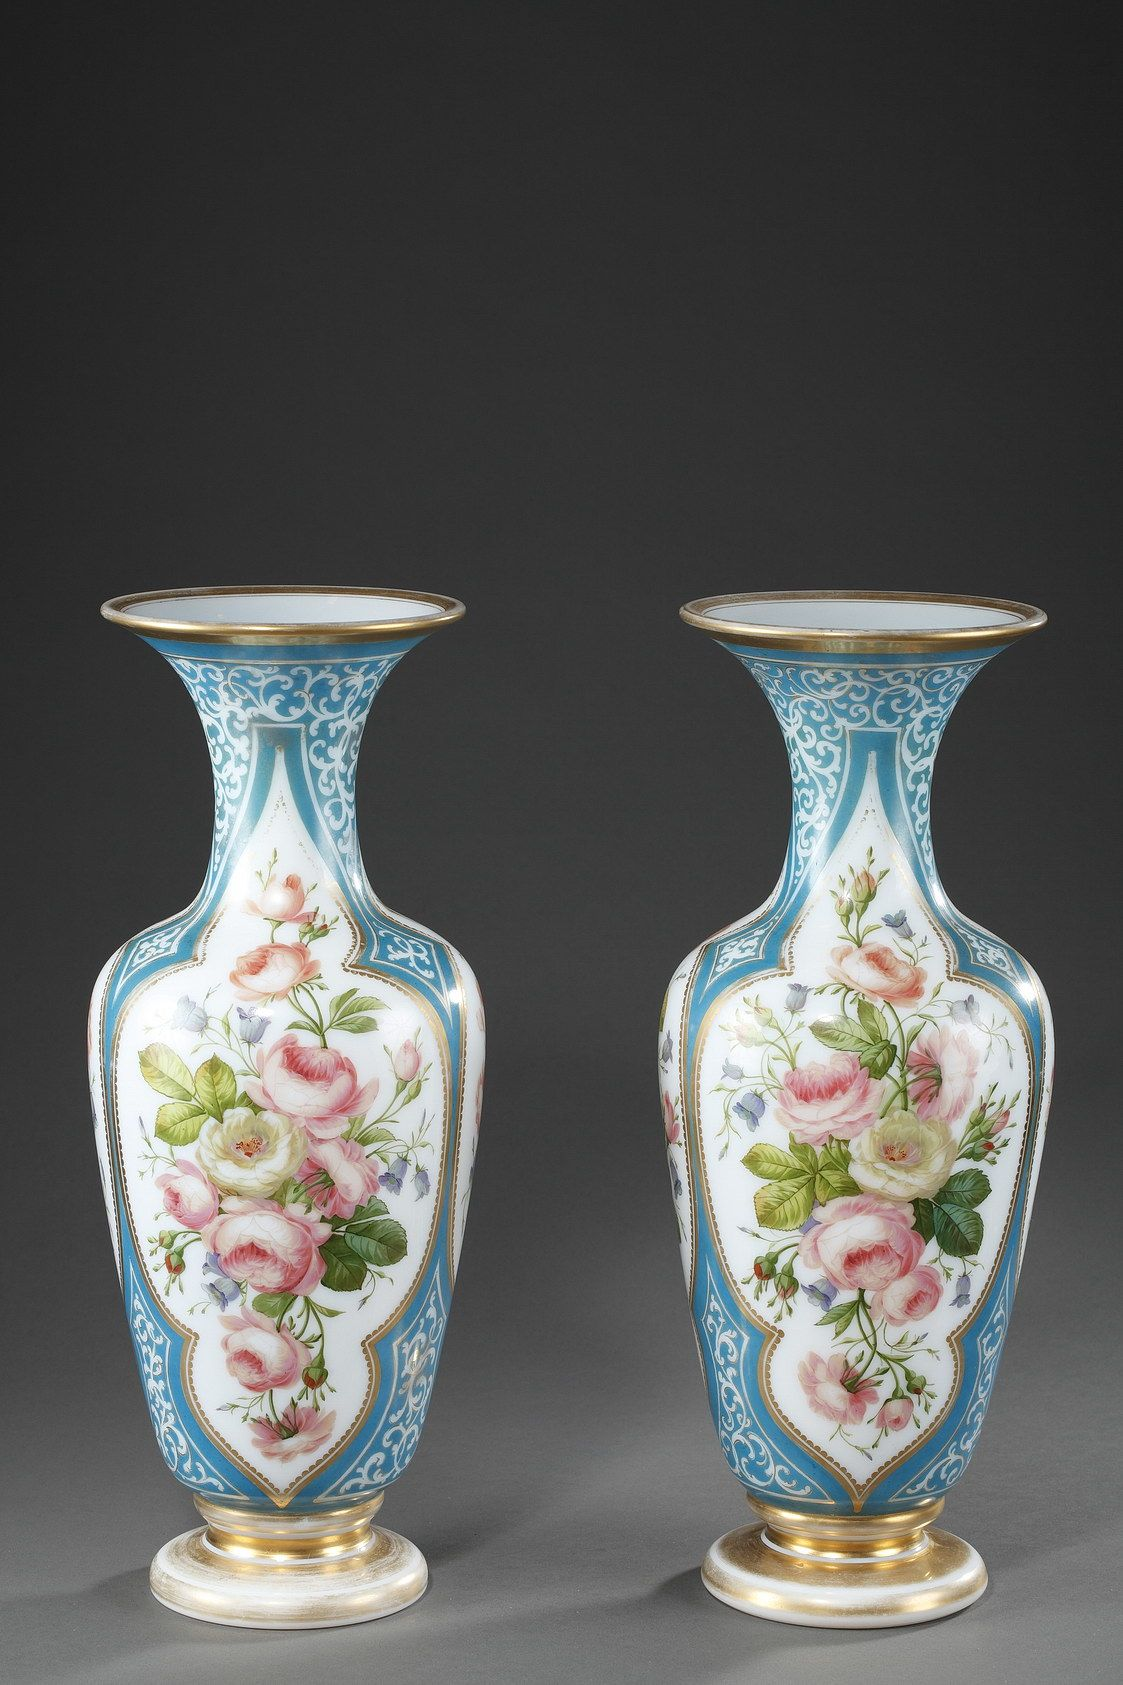 Decorated Mining Urn An Enamel Opaline Balustershaped Pair Of Vases Decorated With